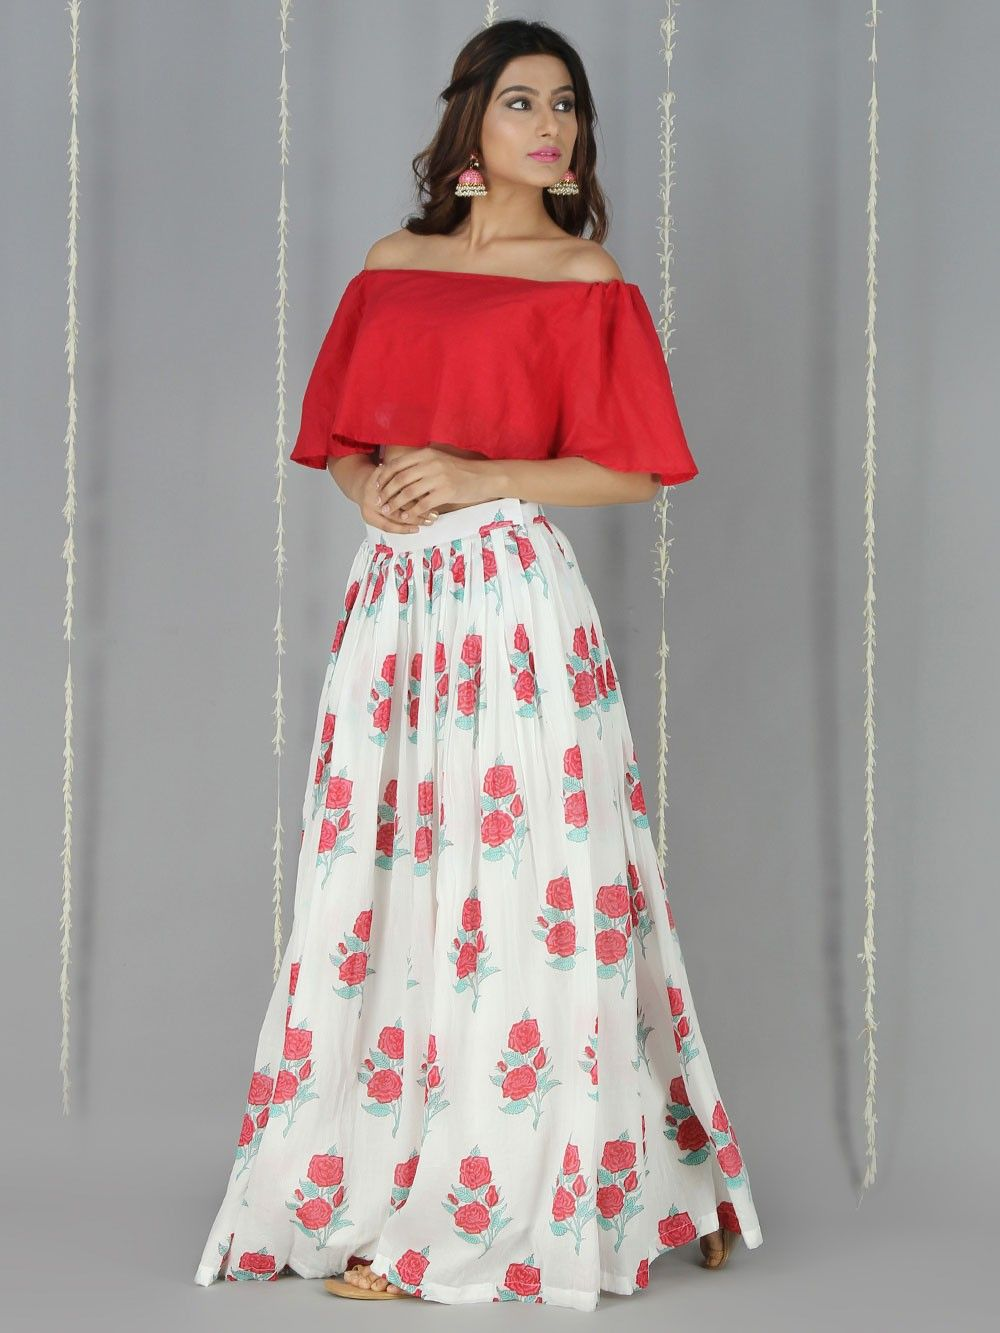 1b7784efb5 Buy Red White Mulmul Off Shoulder Crop Top with Skirt - Set of 2 ...